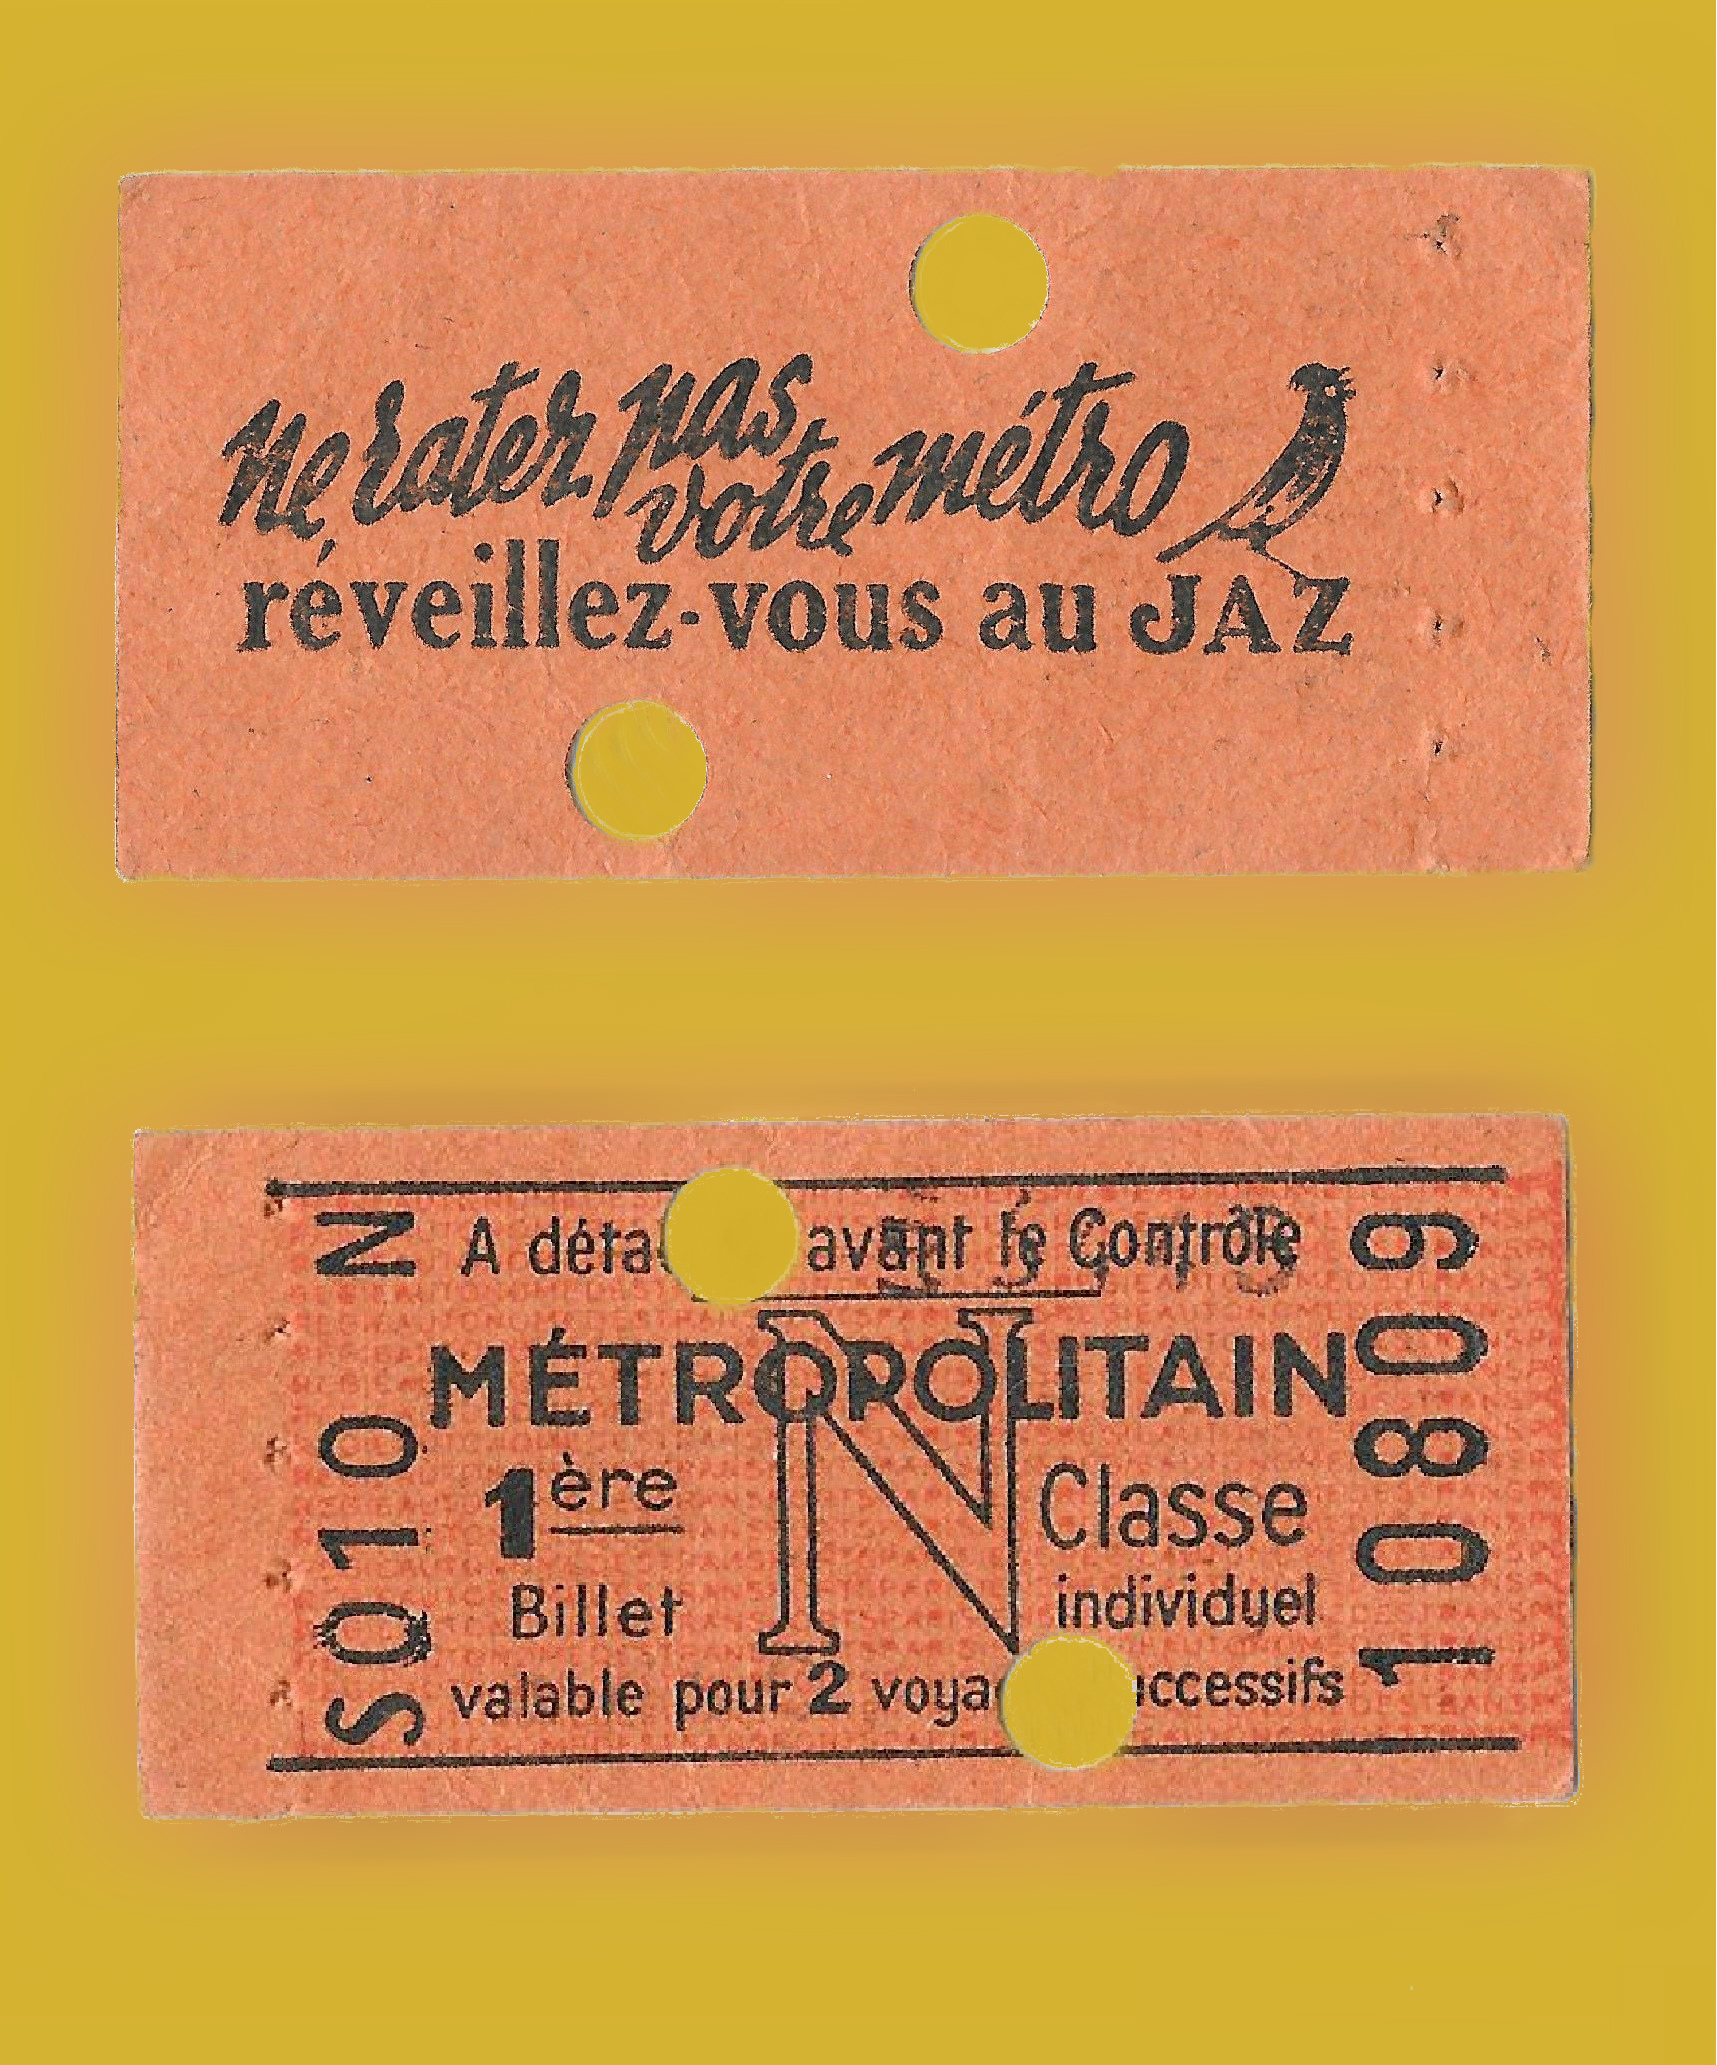 jaz-ticket-metro